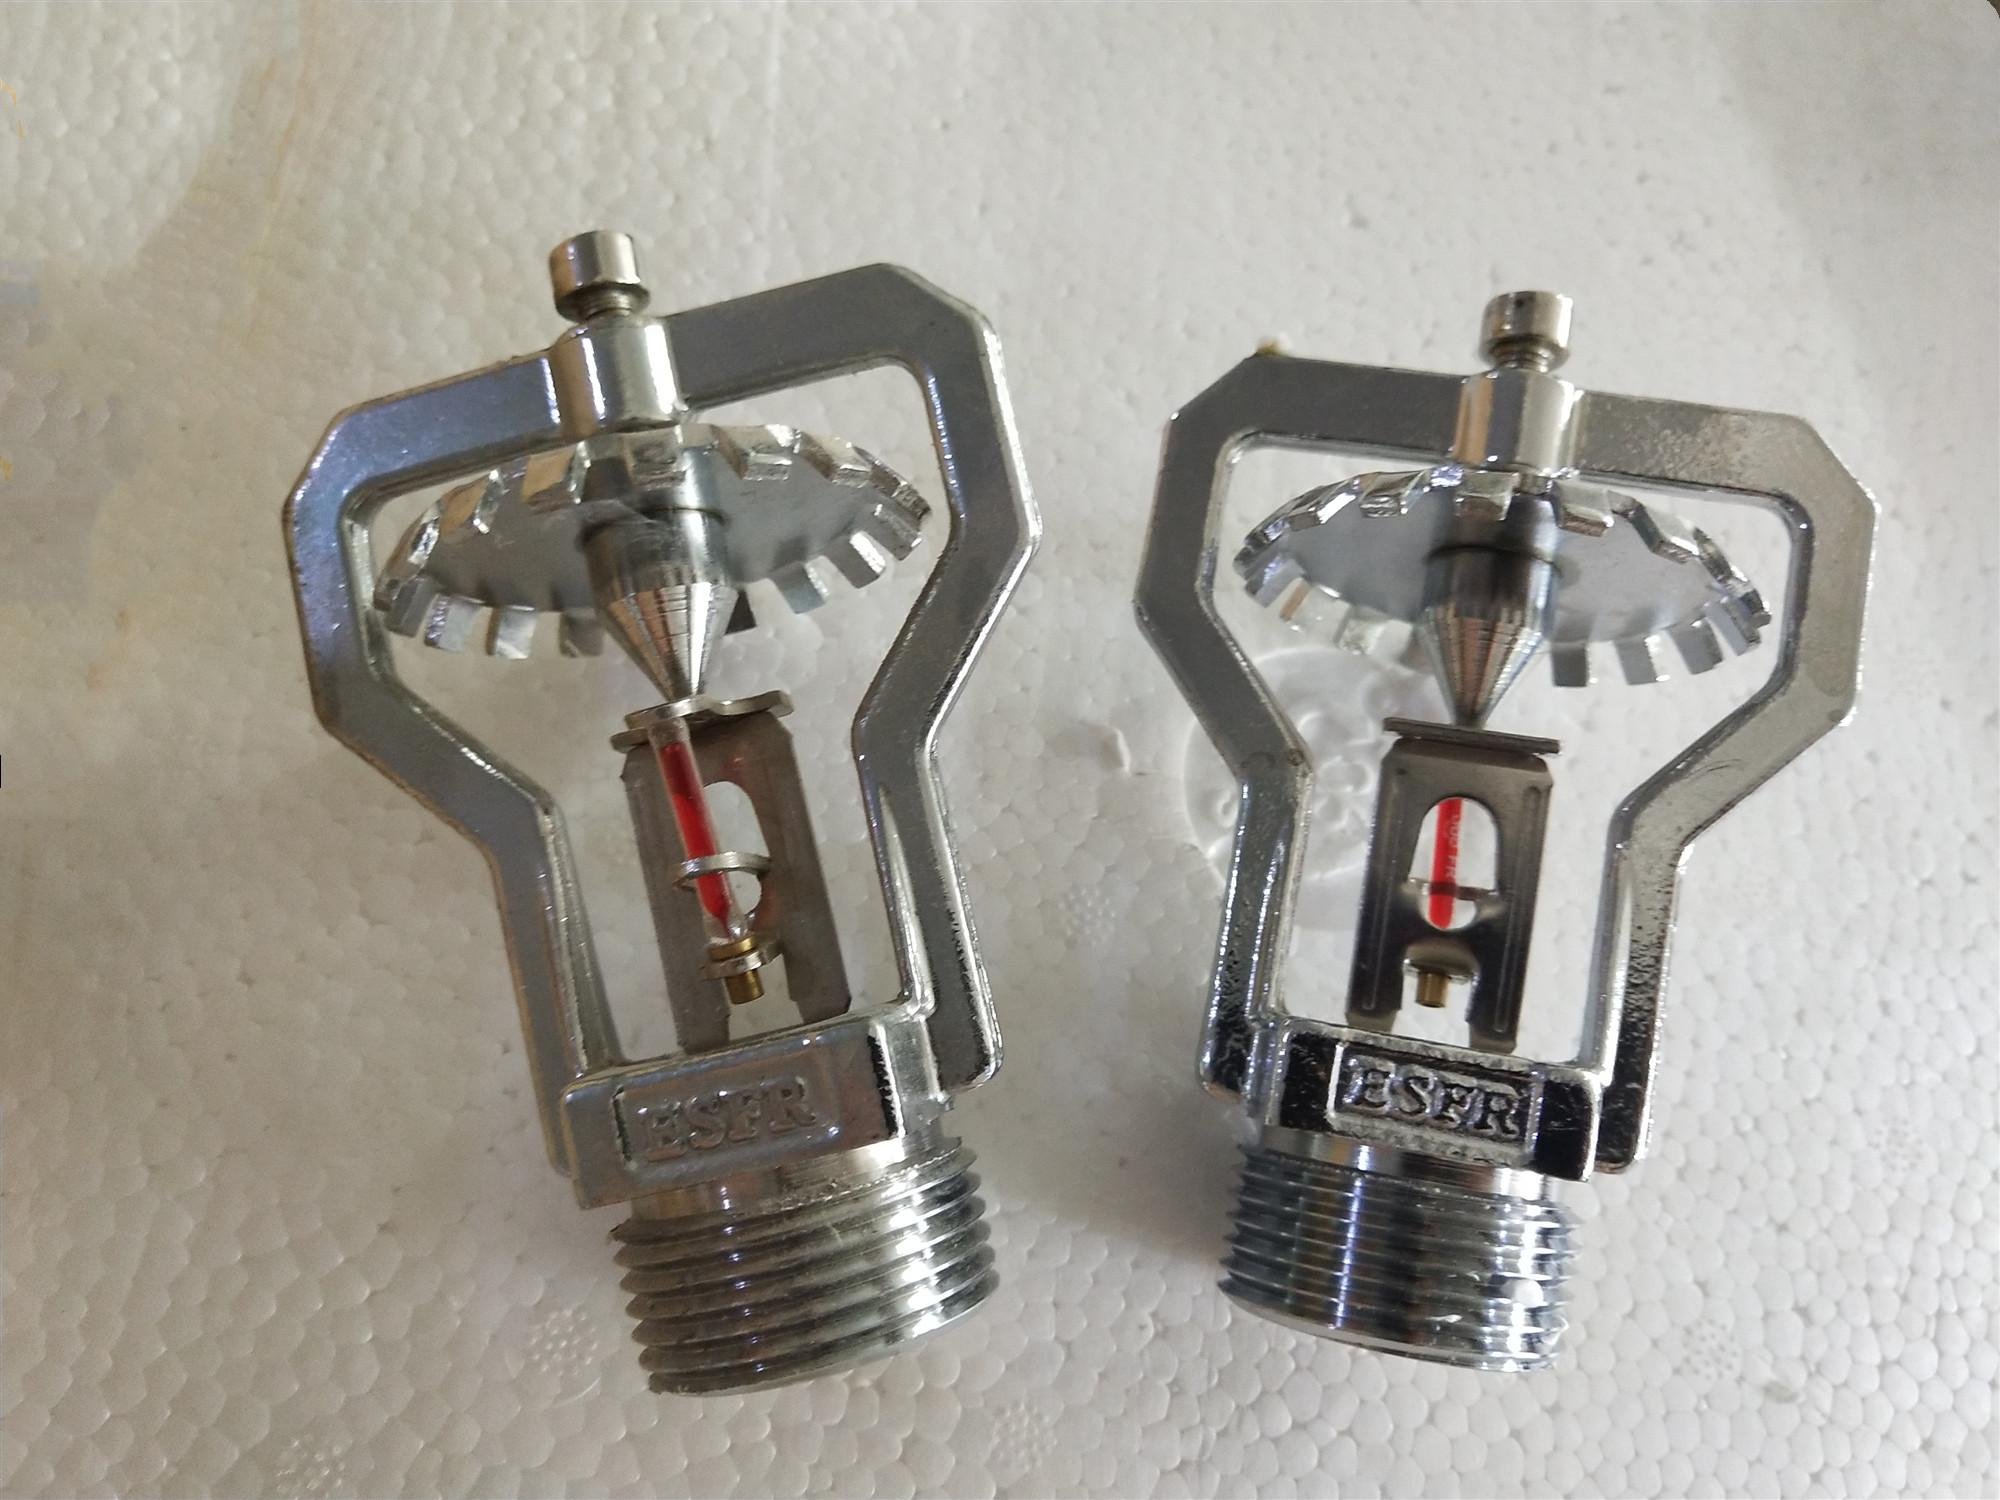 ESFR Early Suppression Fast Response Glass Bulb Fire Sprinkler Fujian Guangbo 1